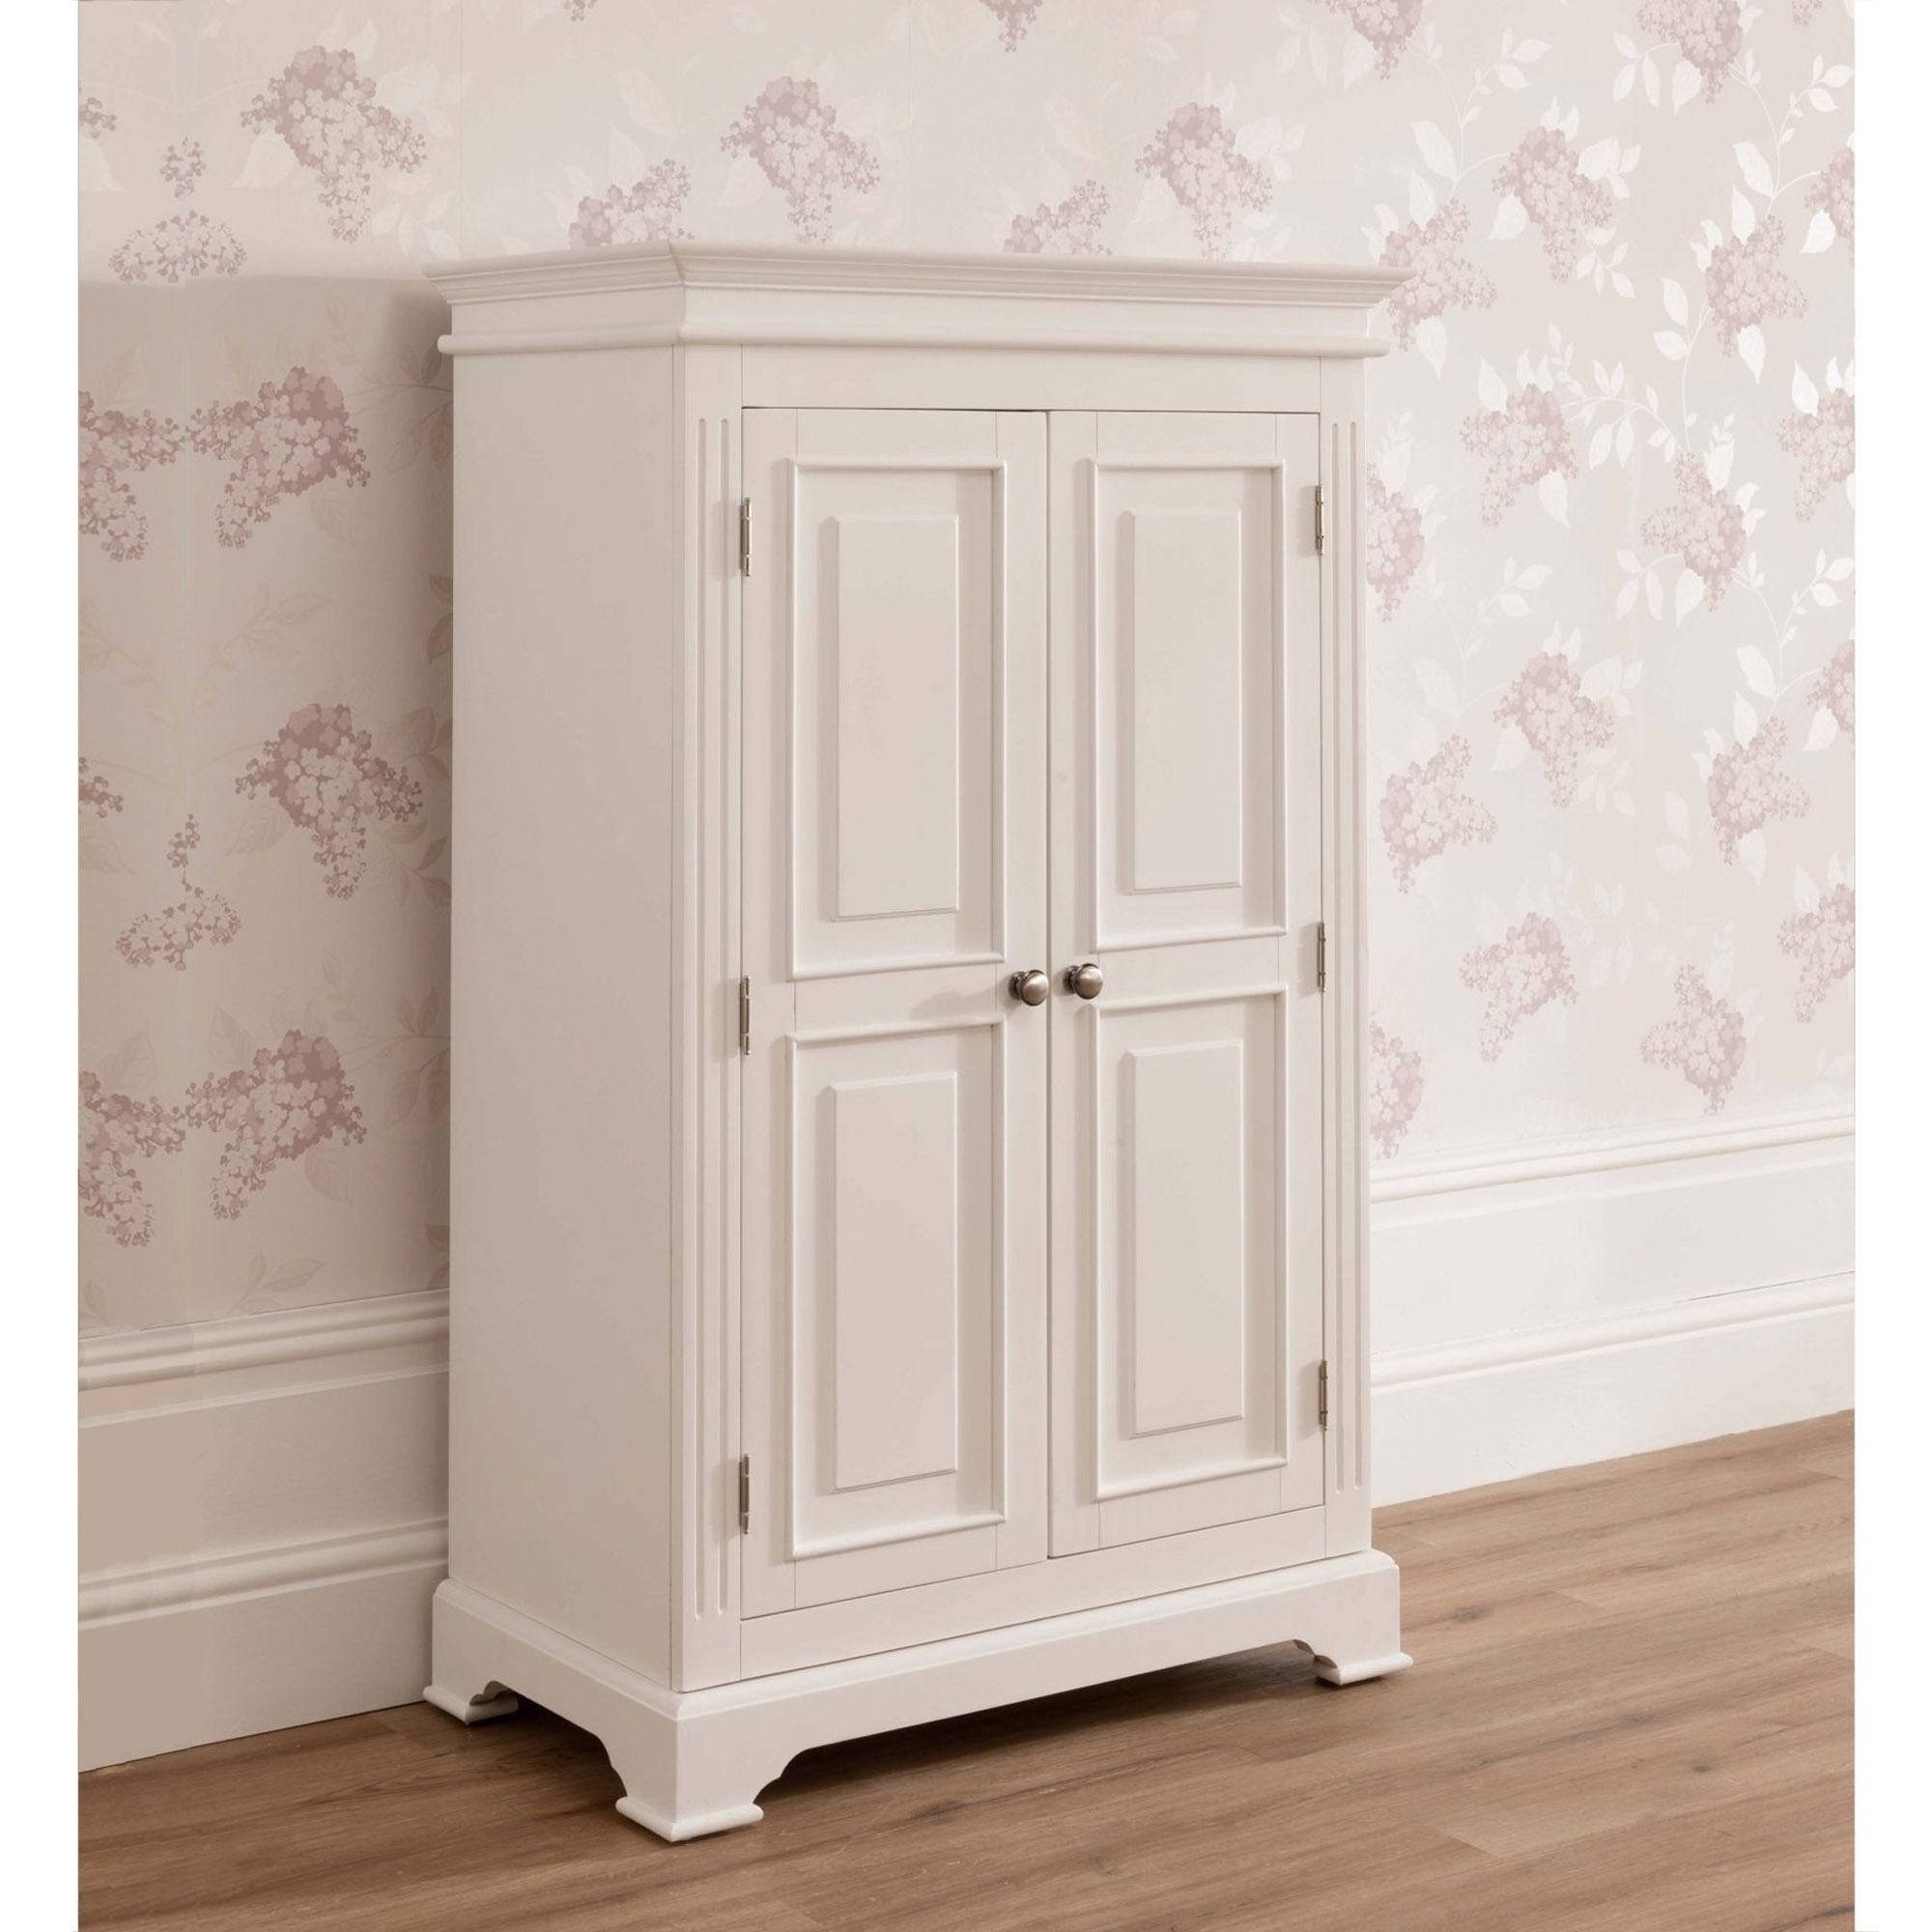 Childrens Tallboy Wardrobes With Latest Sophia Kids Shabby Chic Wardrobe Works Wonderful Alongside Our (View 10 of 15)